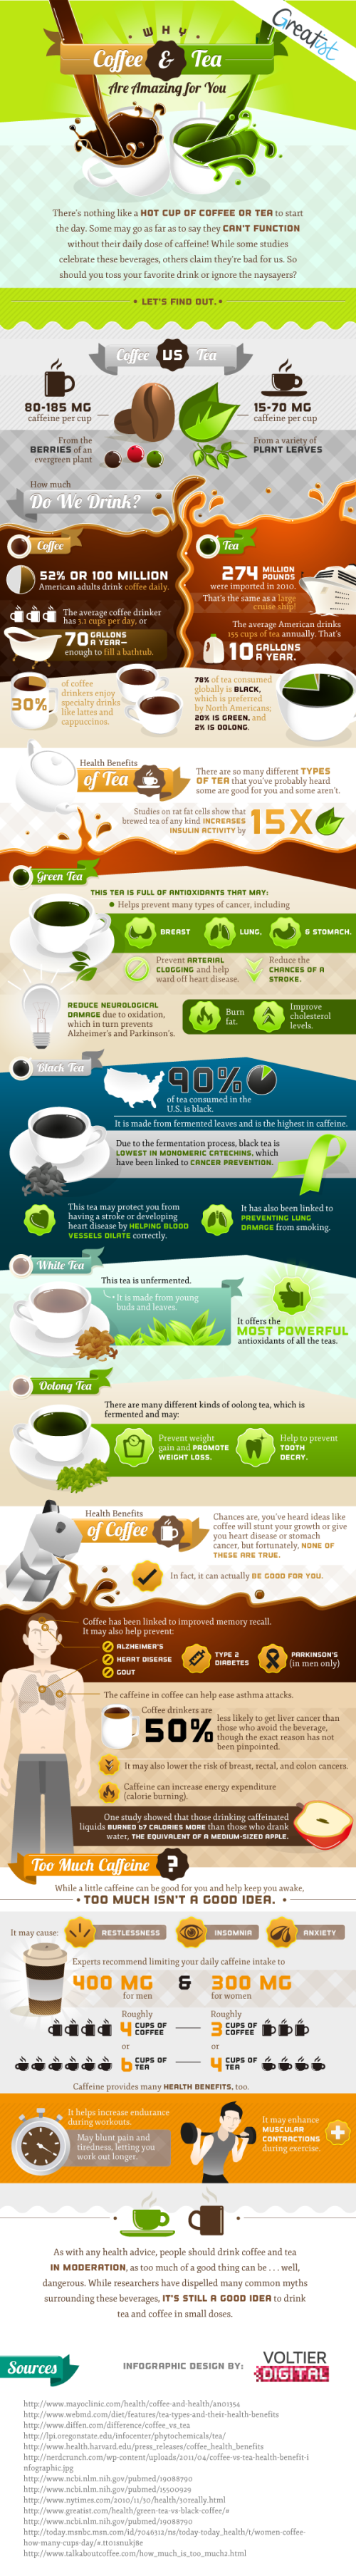 why-coffee--tea-are-amazing-for-you